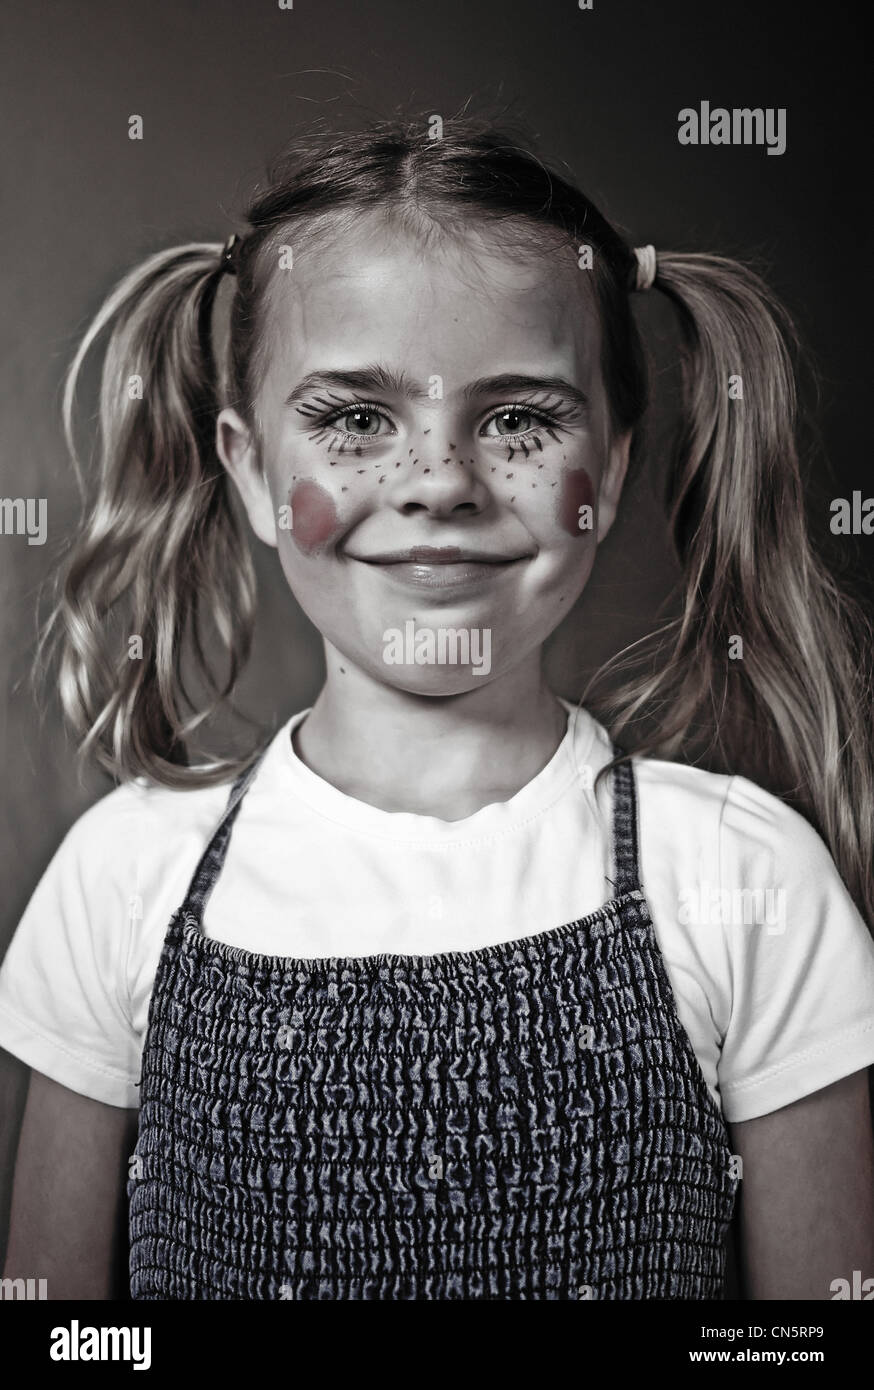 Six year old girl dressed and made up as a doll - Stock Image